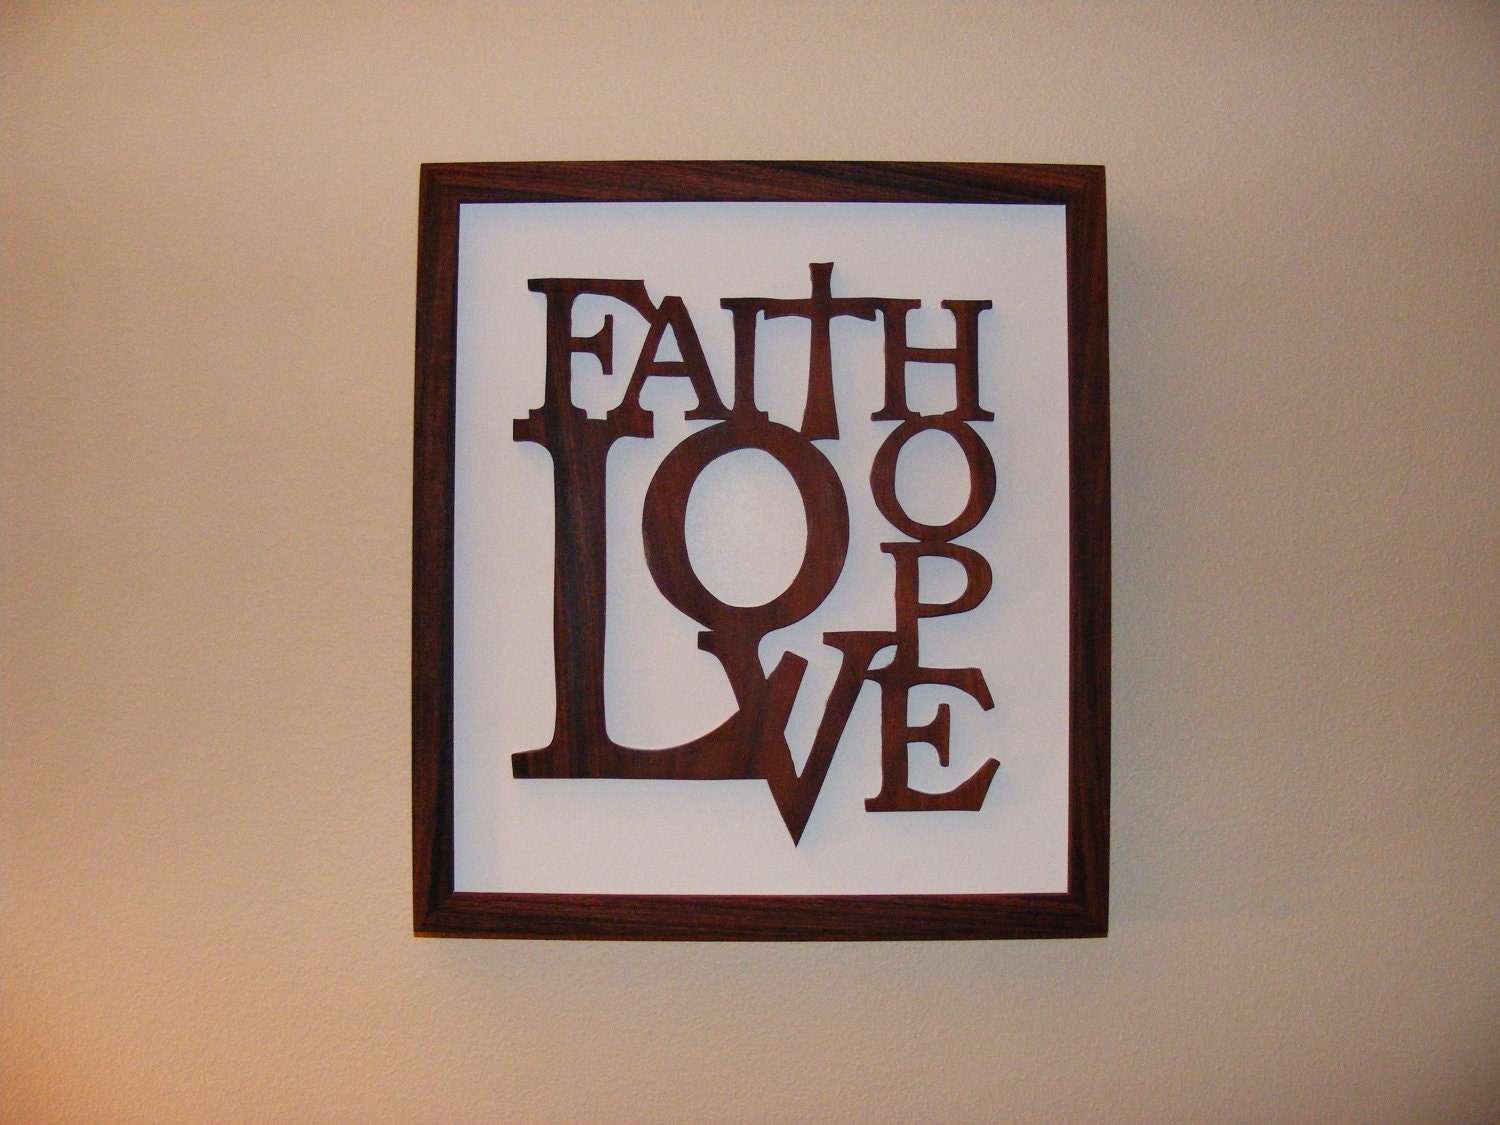 Faith hope love home decor rosewood wall art